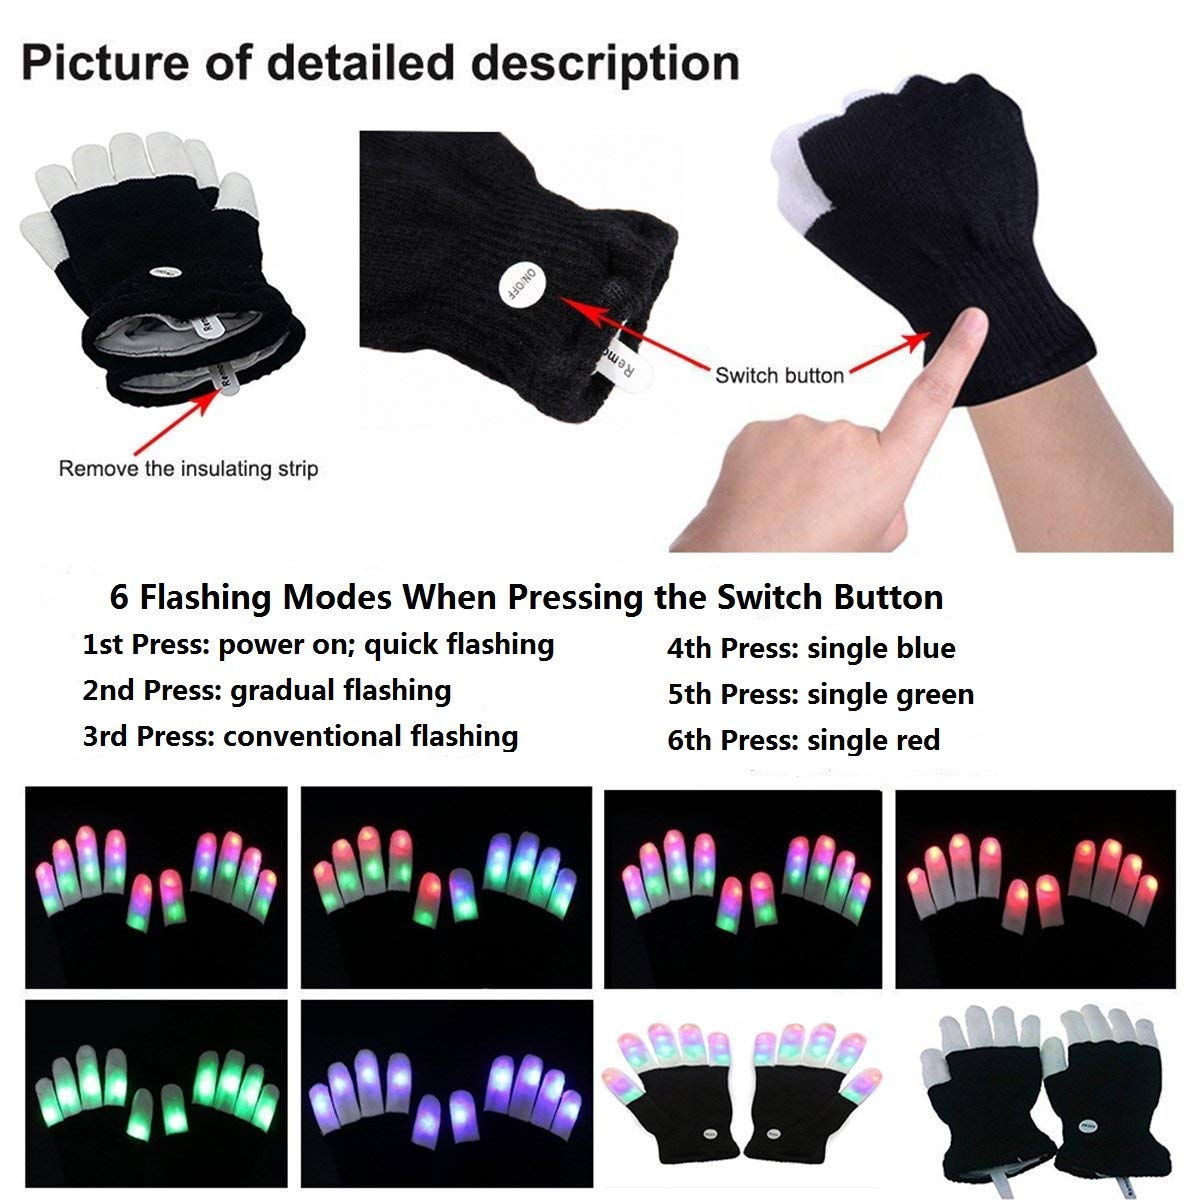 LED Gloves, Light Up Hand Gloves, Flashing Fingers Colourful Rave Gloves 6 Modes Glow for Festivals/ Halloween/ Christmas/ Bonfire Night/ Party/ Games/ Running/ Sports/Gift, Fits Big Kid & Adult Hands